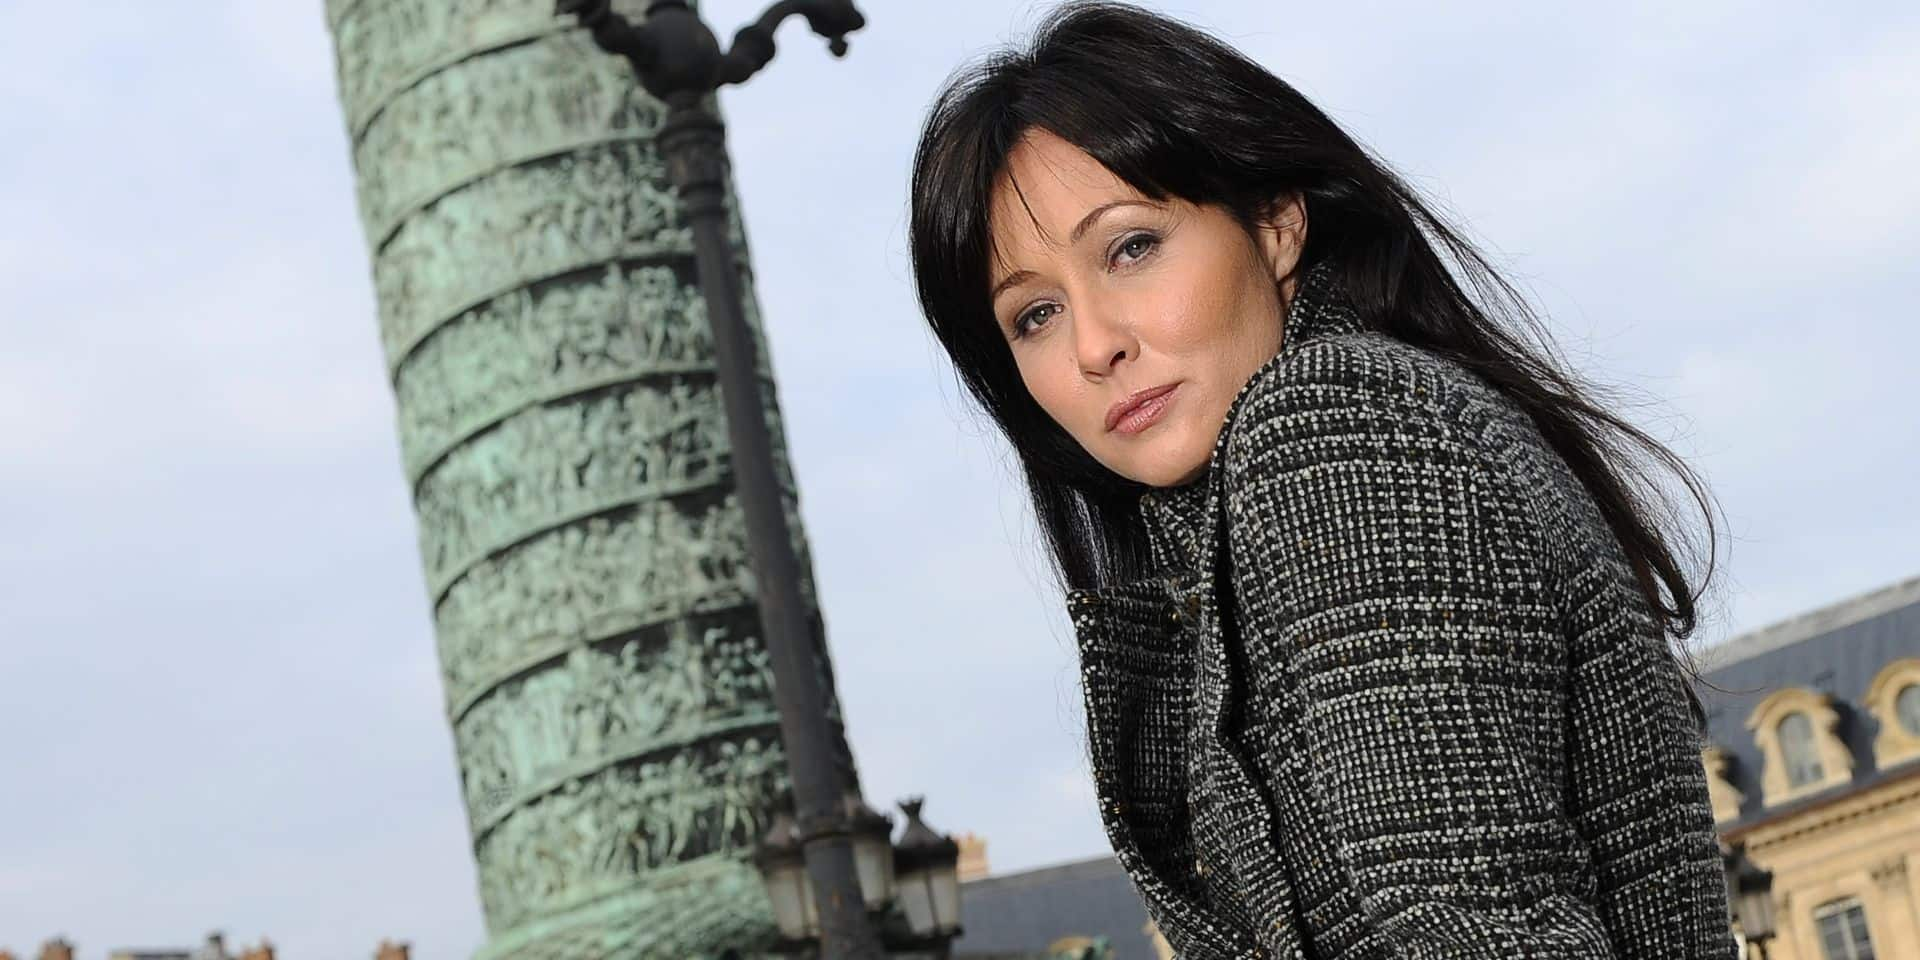 EXCLUSIVE. US actress Shannen Doherty poses in Paris, France